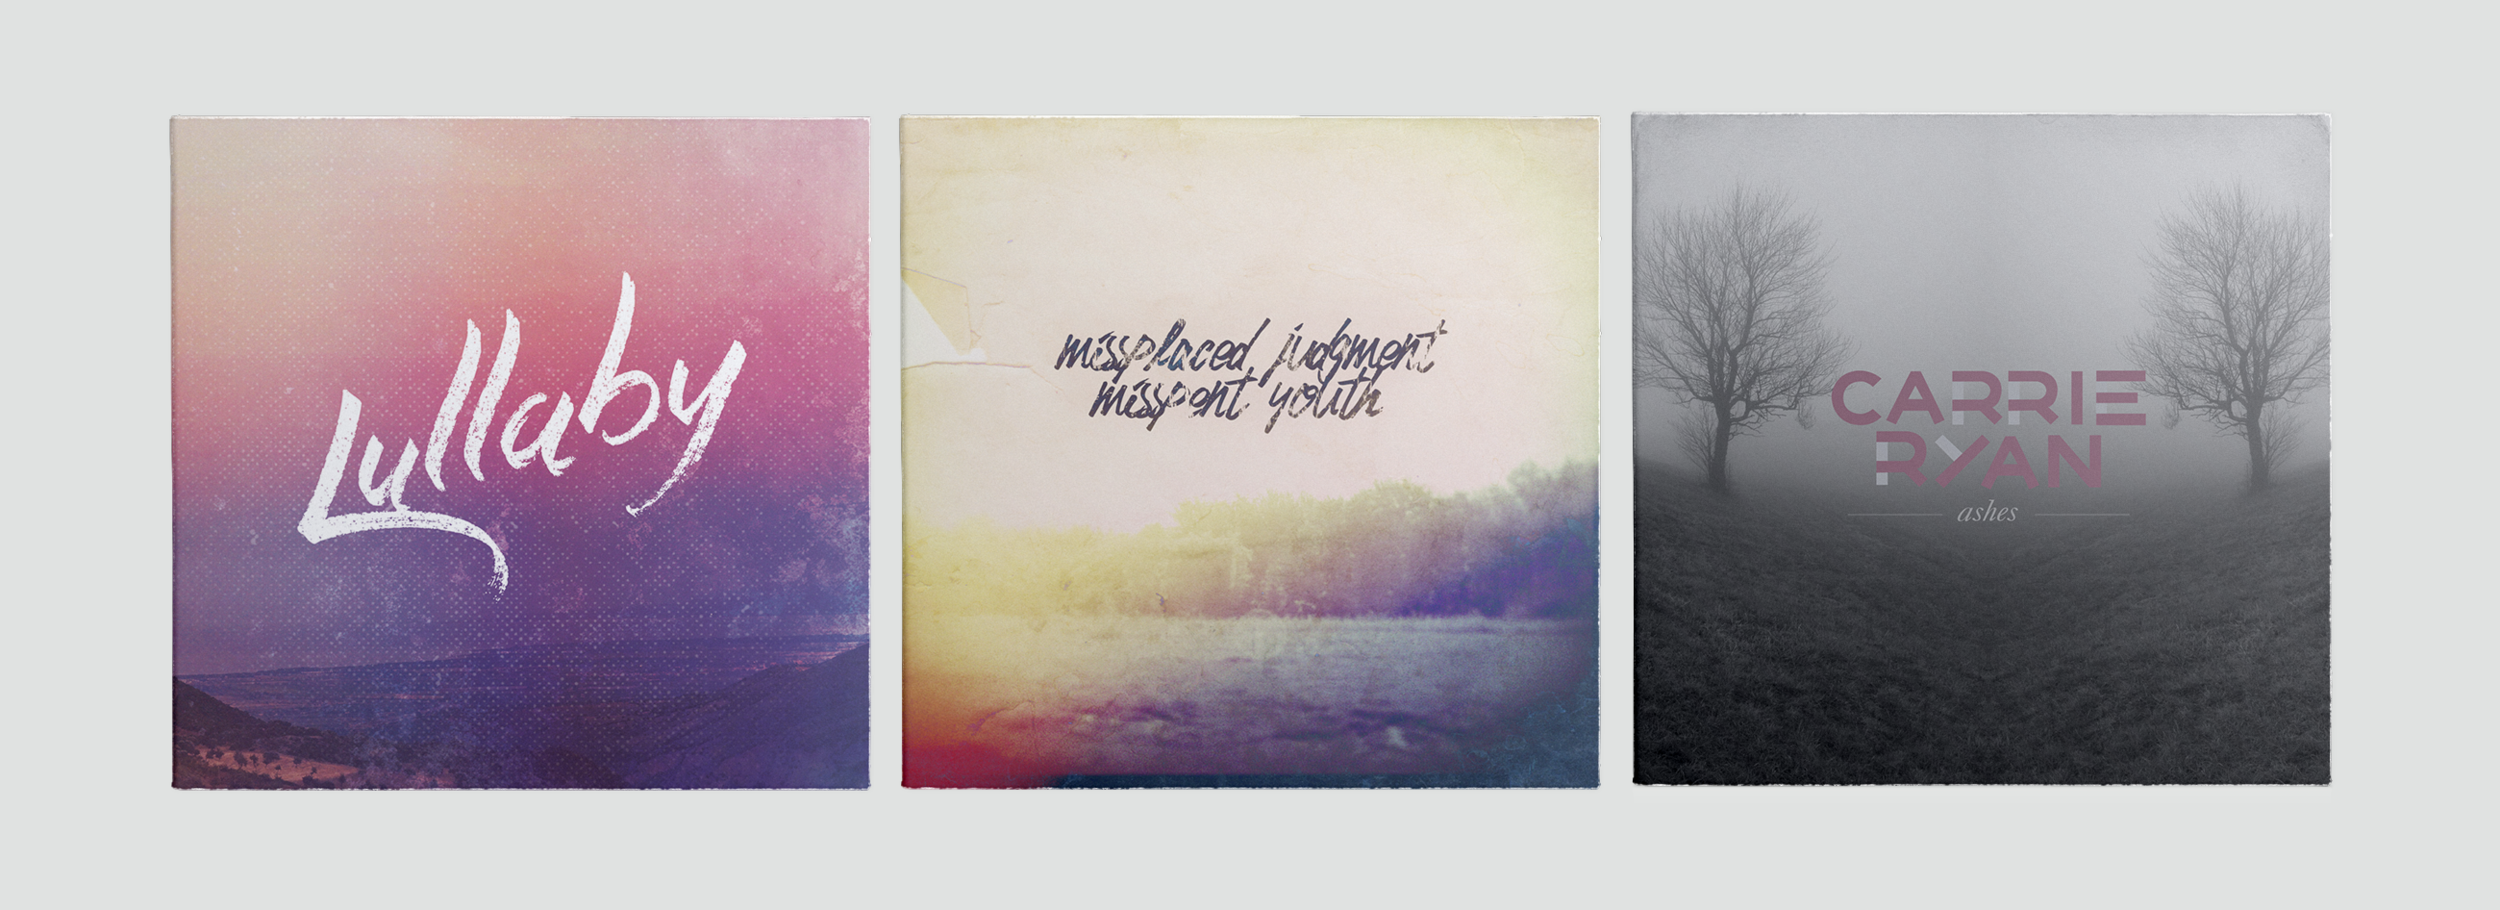 LULLABY  // 2015      MISPLACED JUDGEMENT MISSPENT YOUTH  // 2014      ASHES // 2014 PURCHASE ON:  BANDCAMP